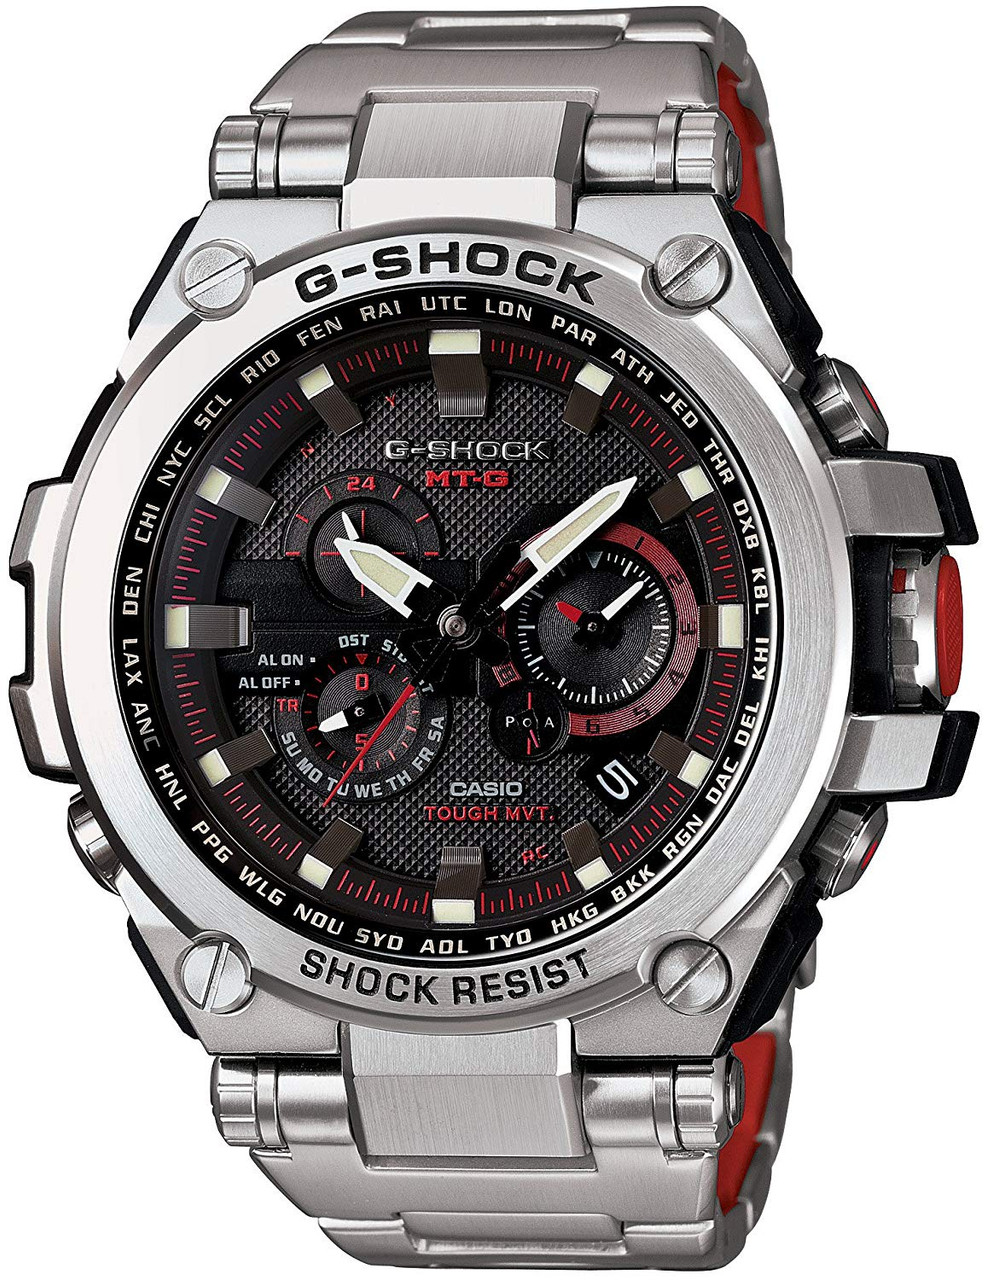 Casio G-Shock MTG-S1000D-1A4JF Multiband 6